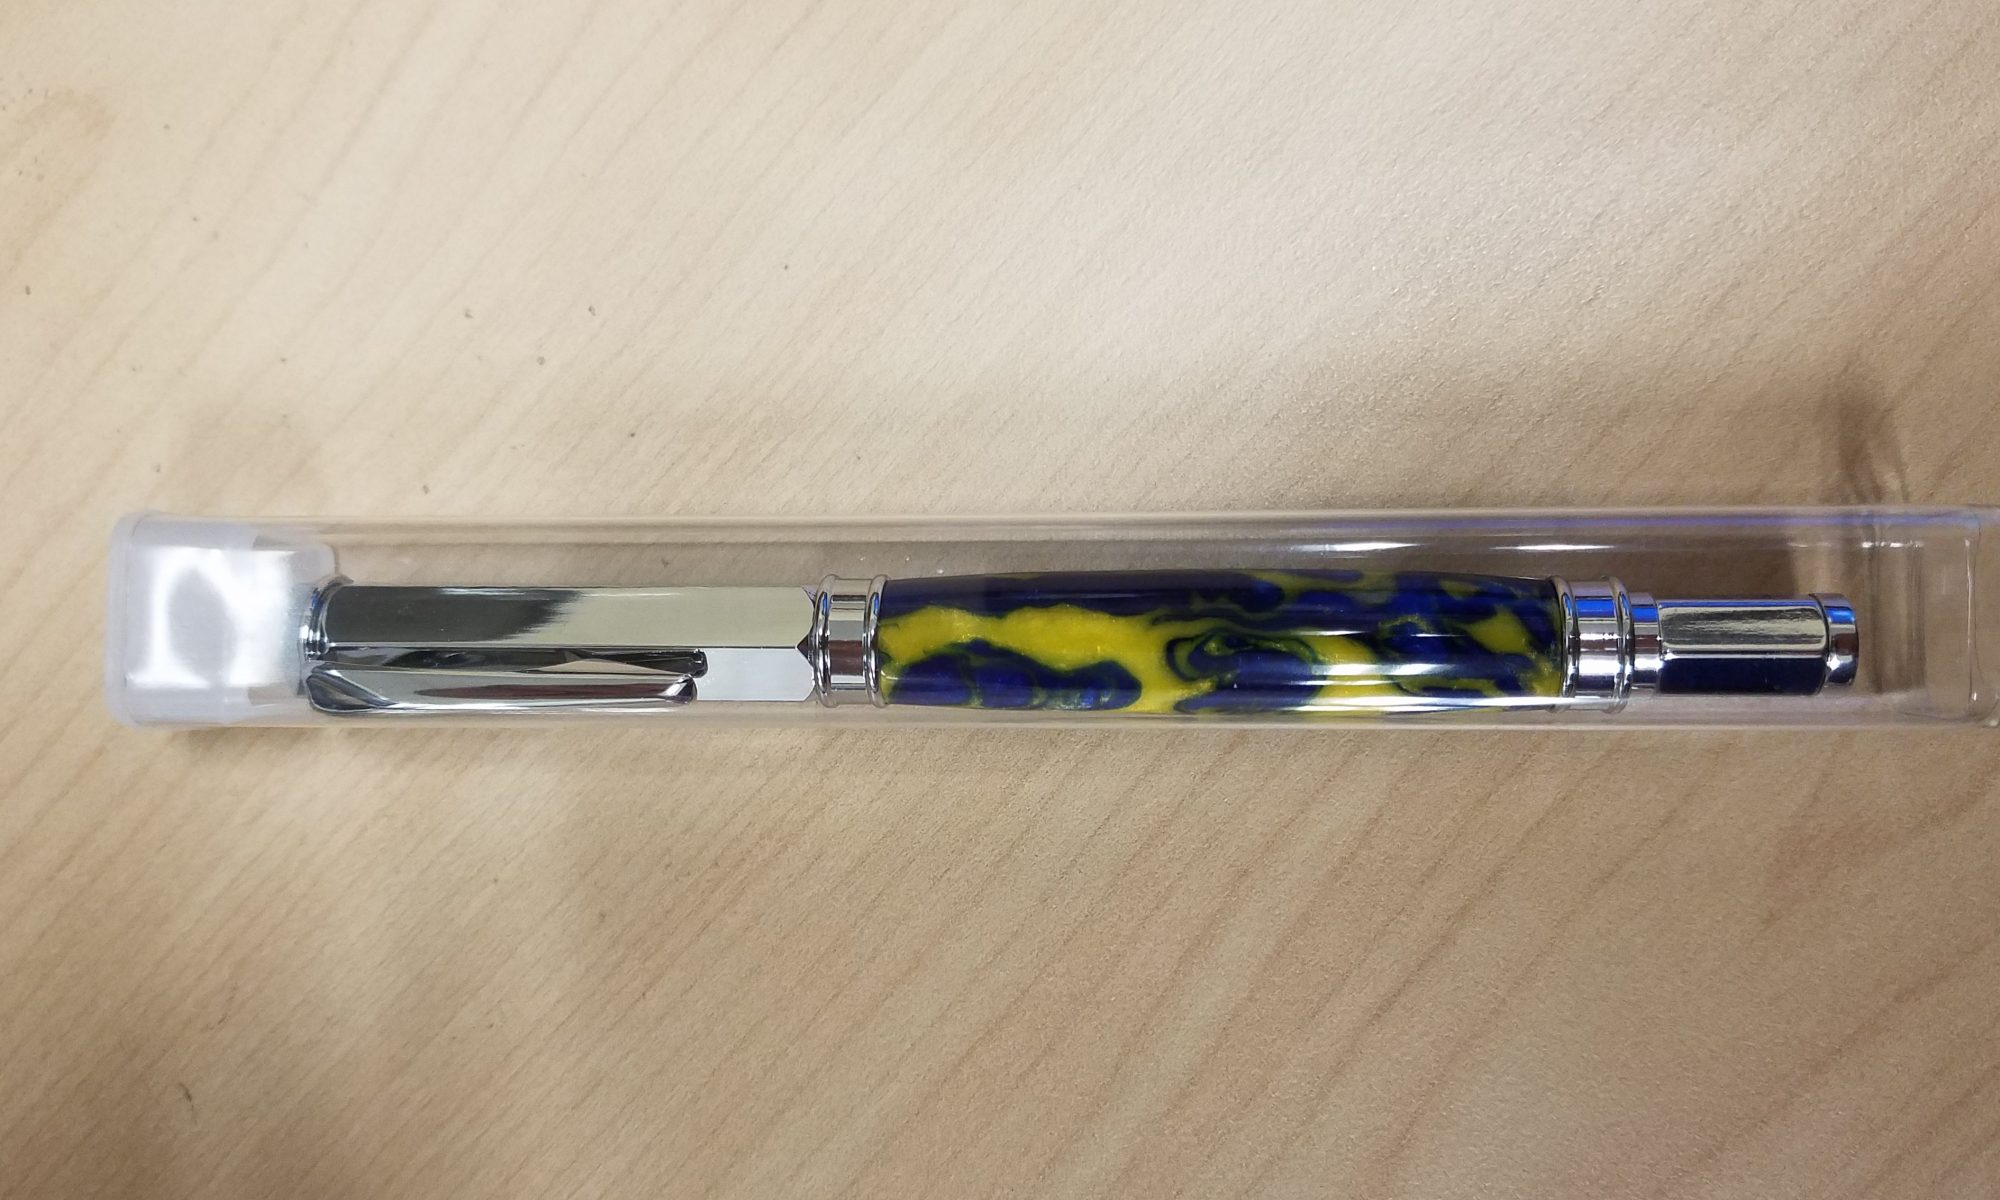 Completed pen